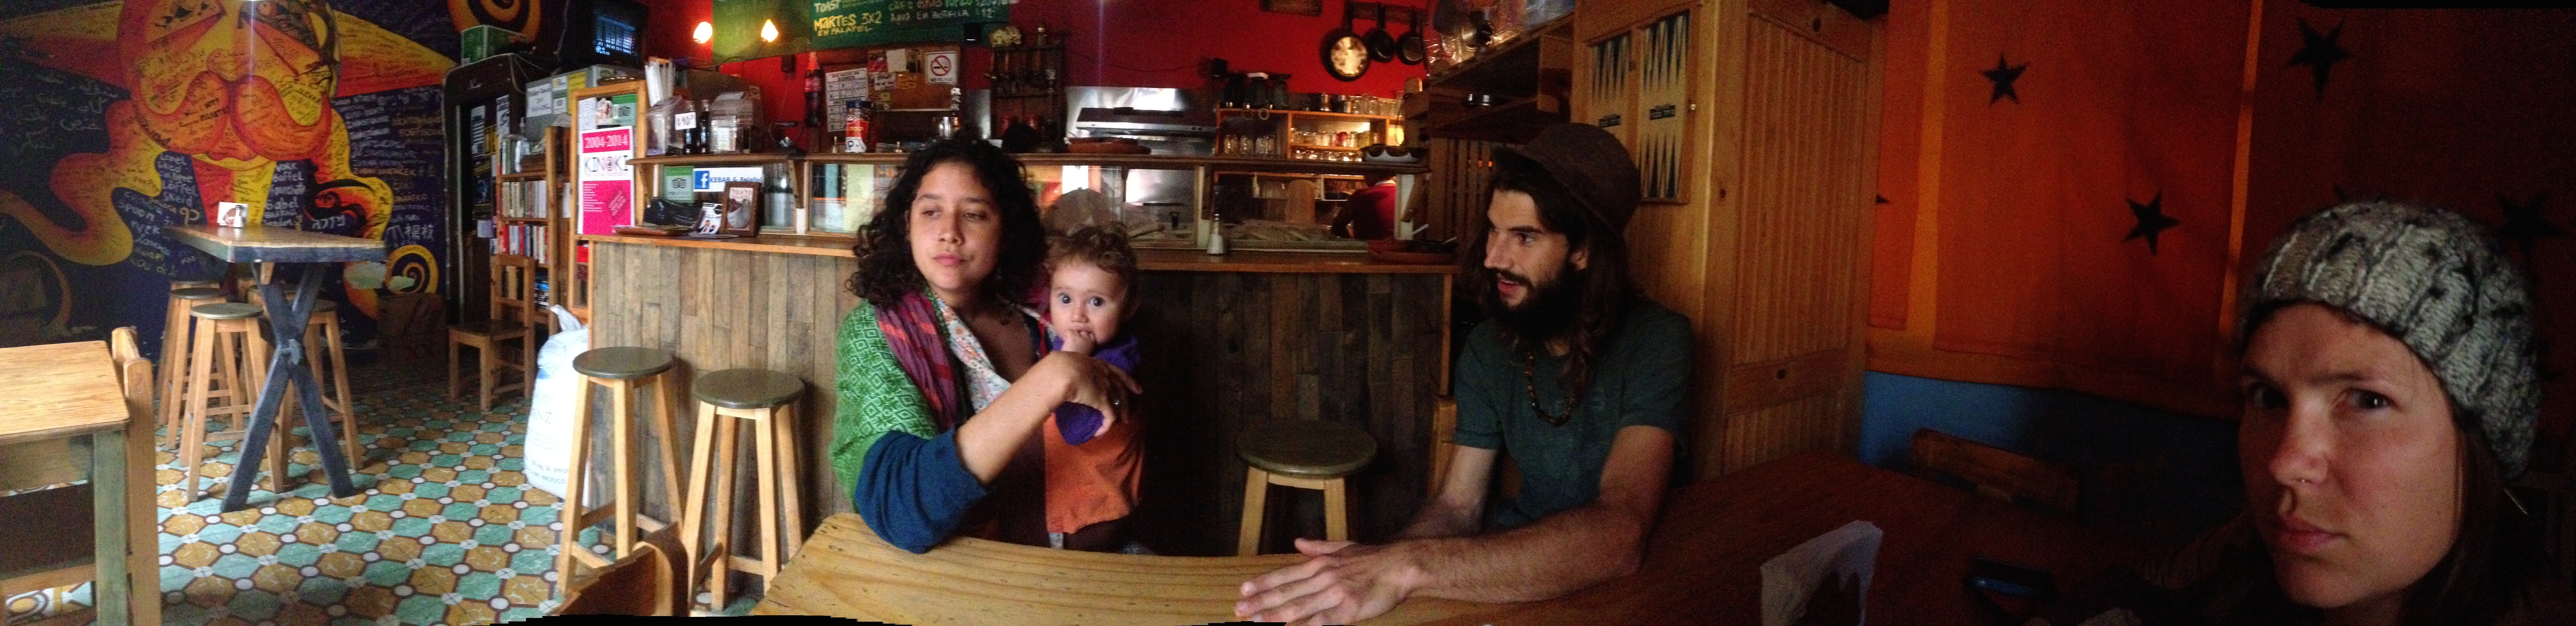 Lander And Family, best falafel I have had